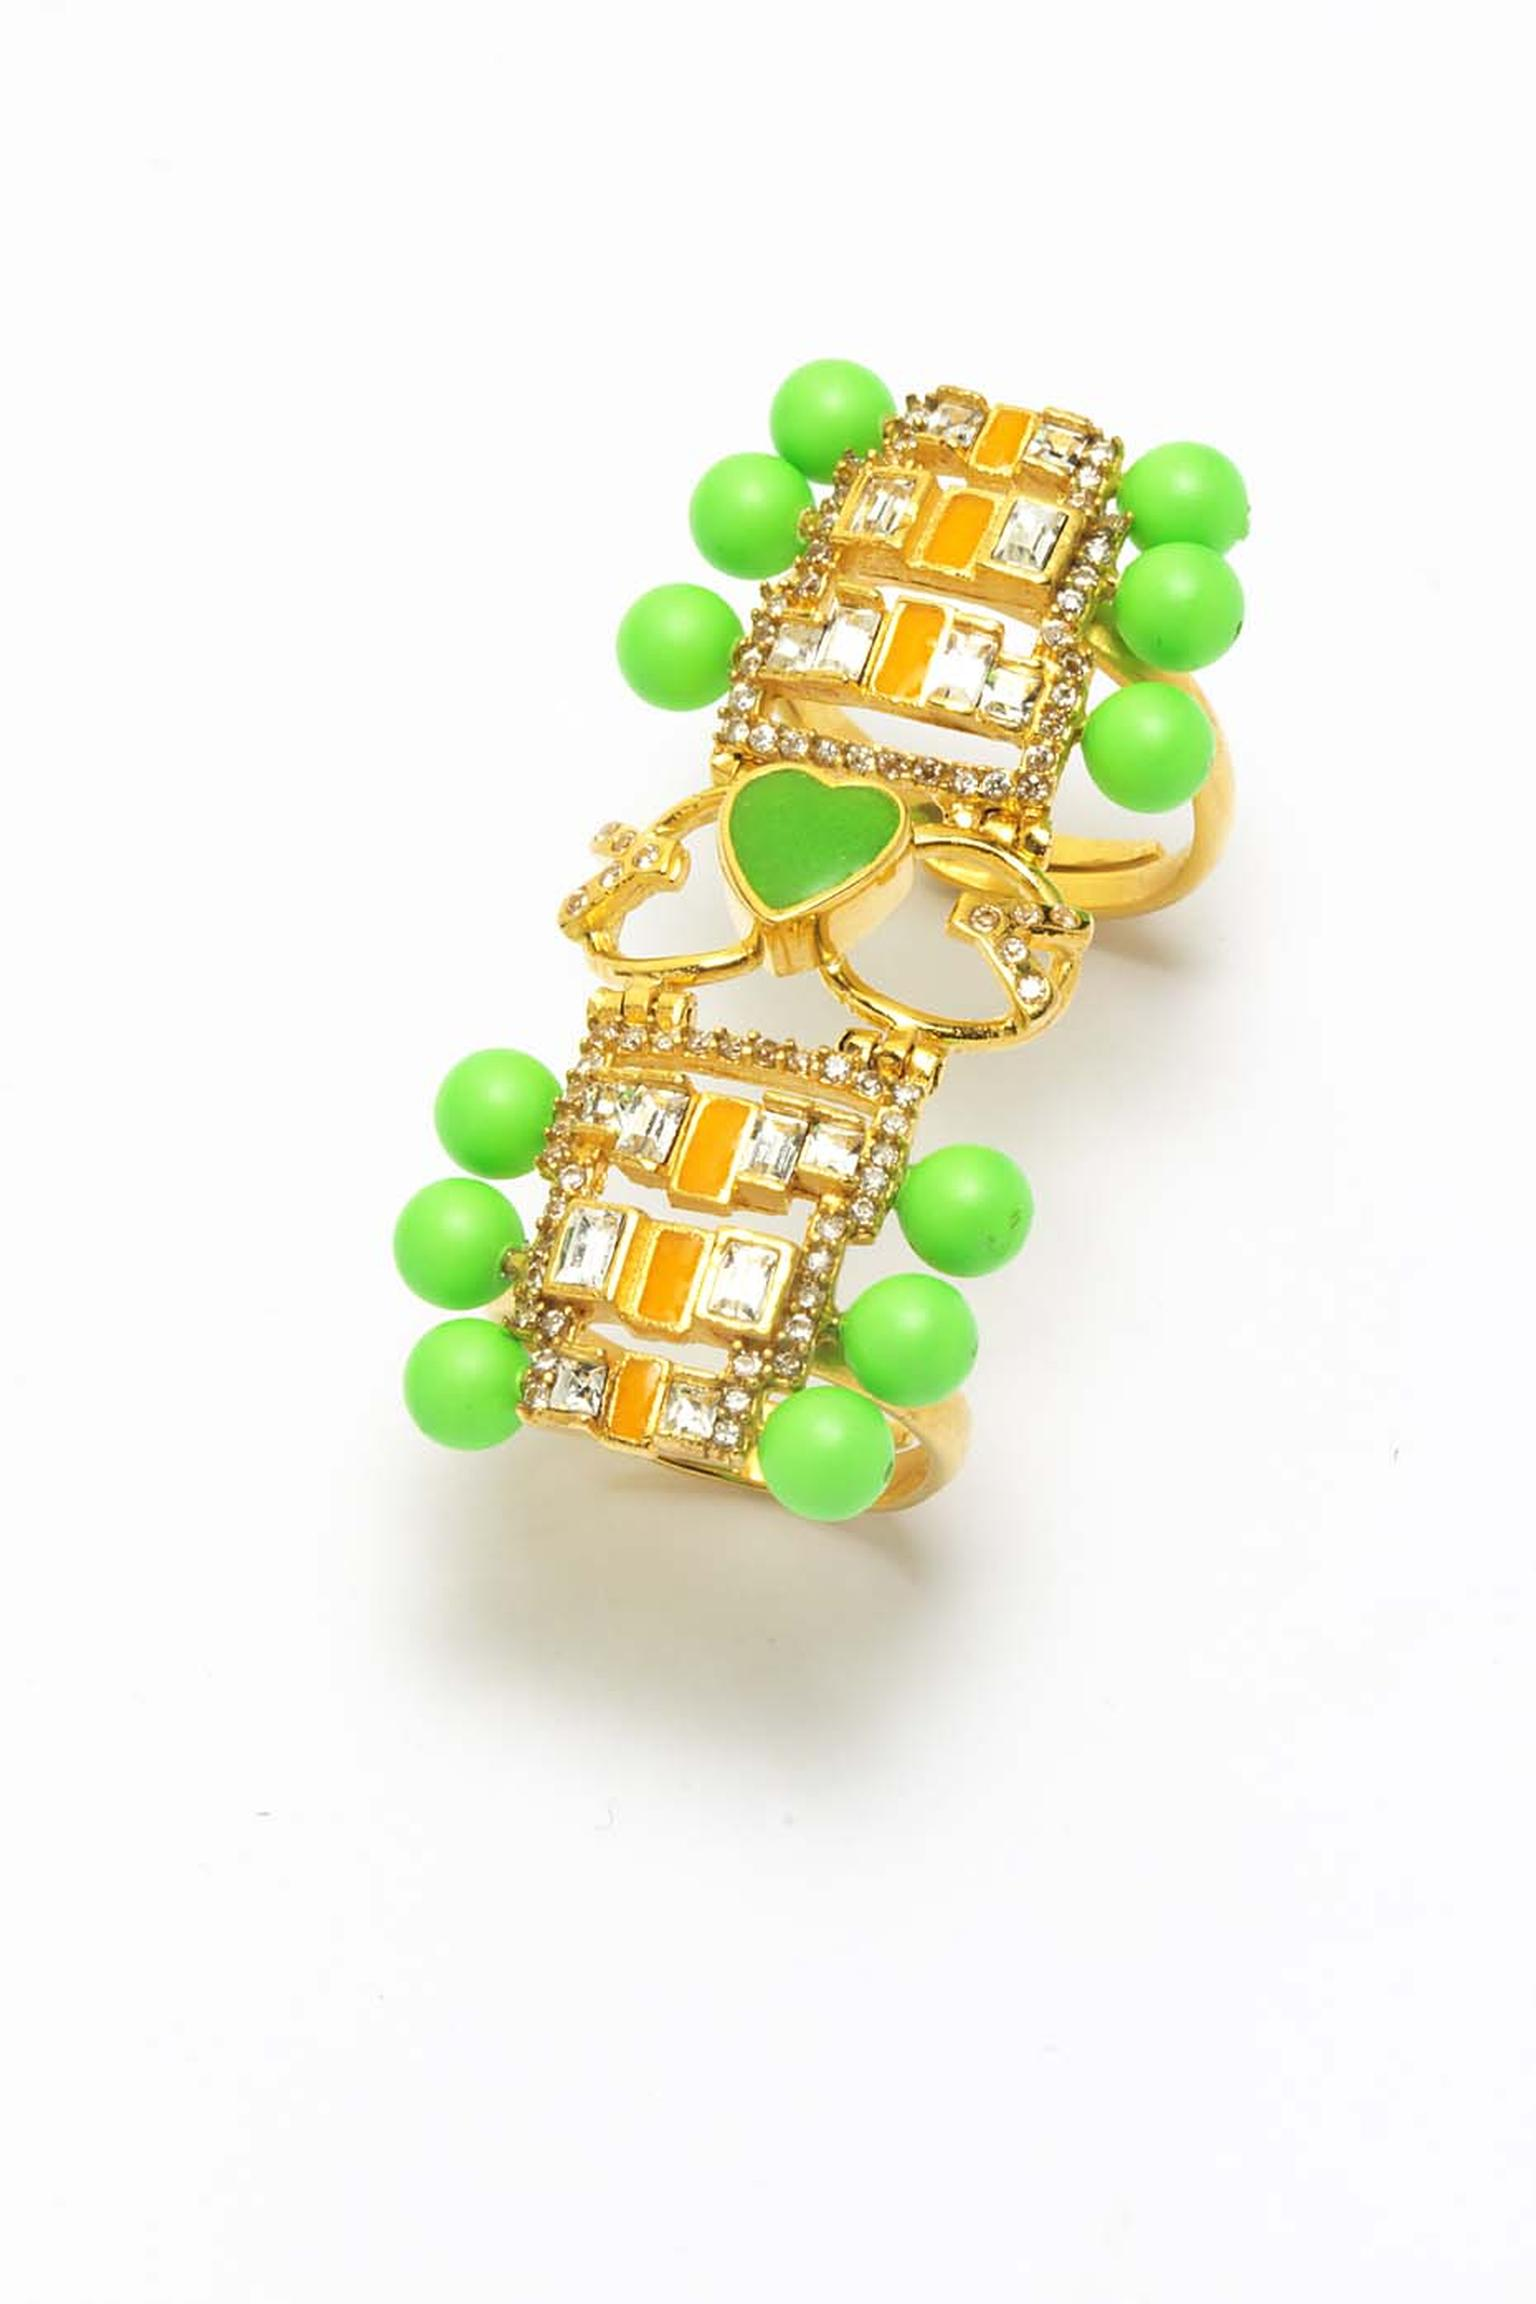 Manish Arora for Amrapali Reeka enamelled ring.